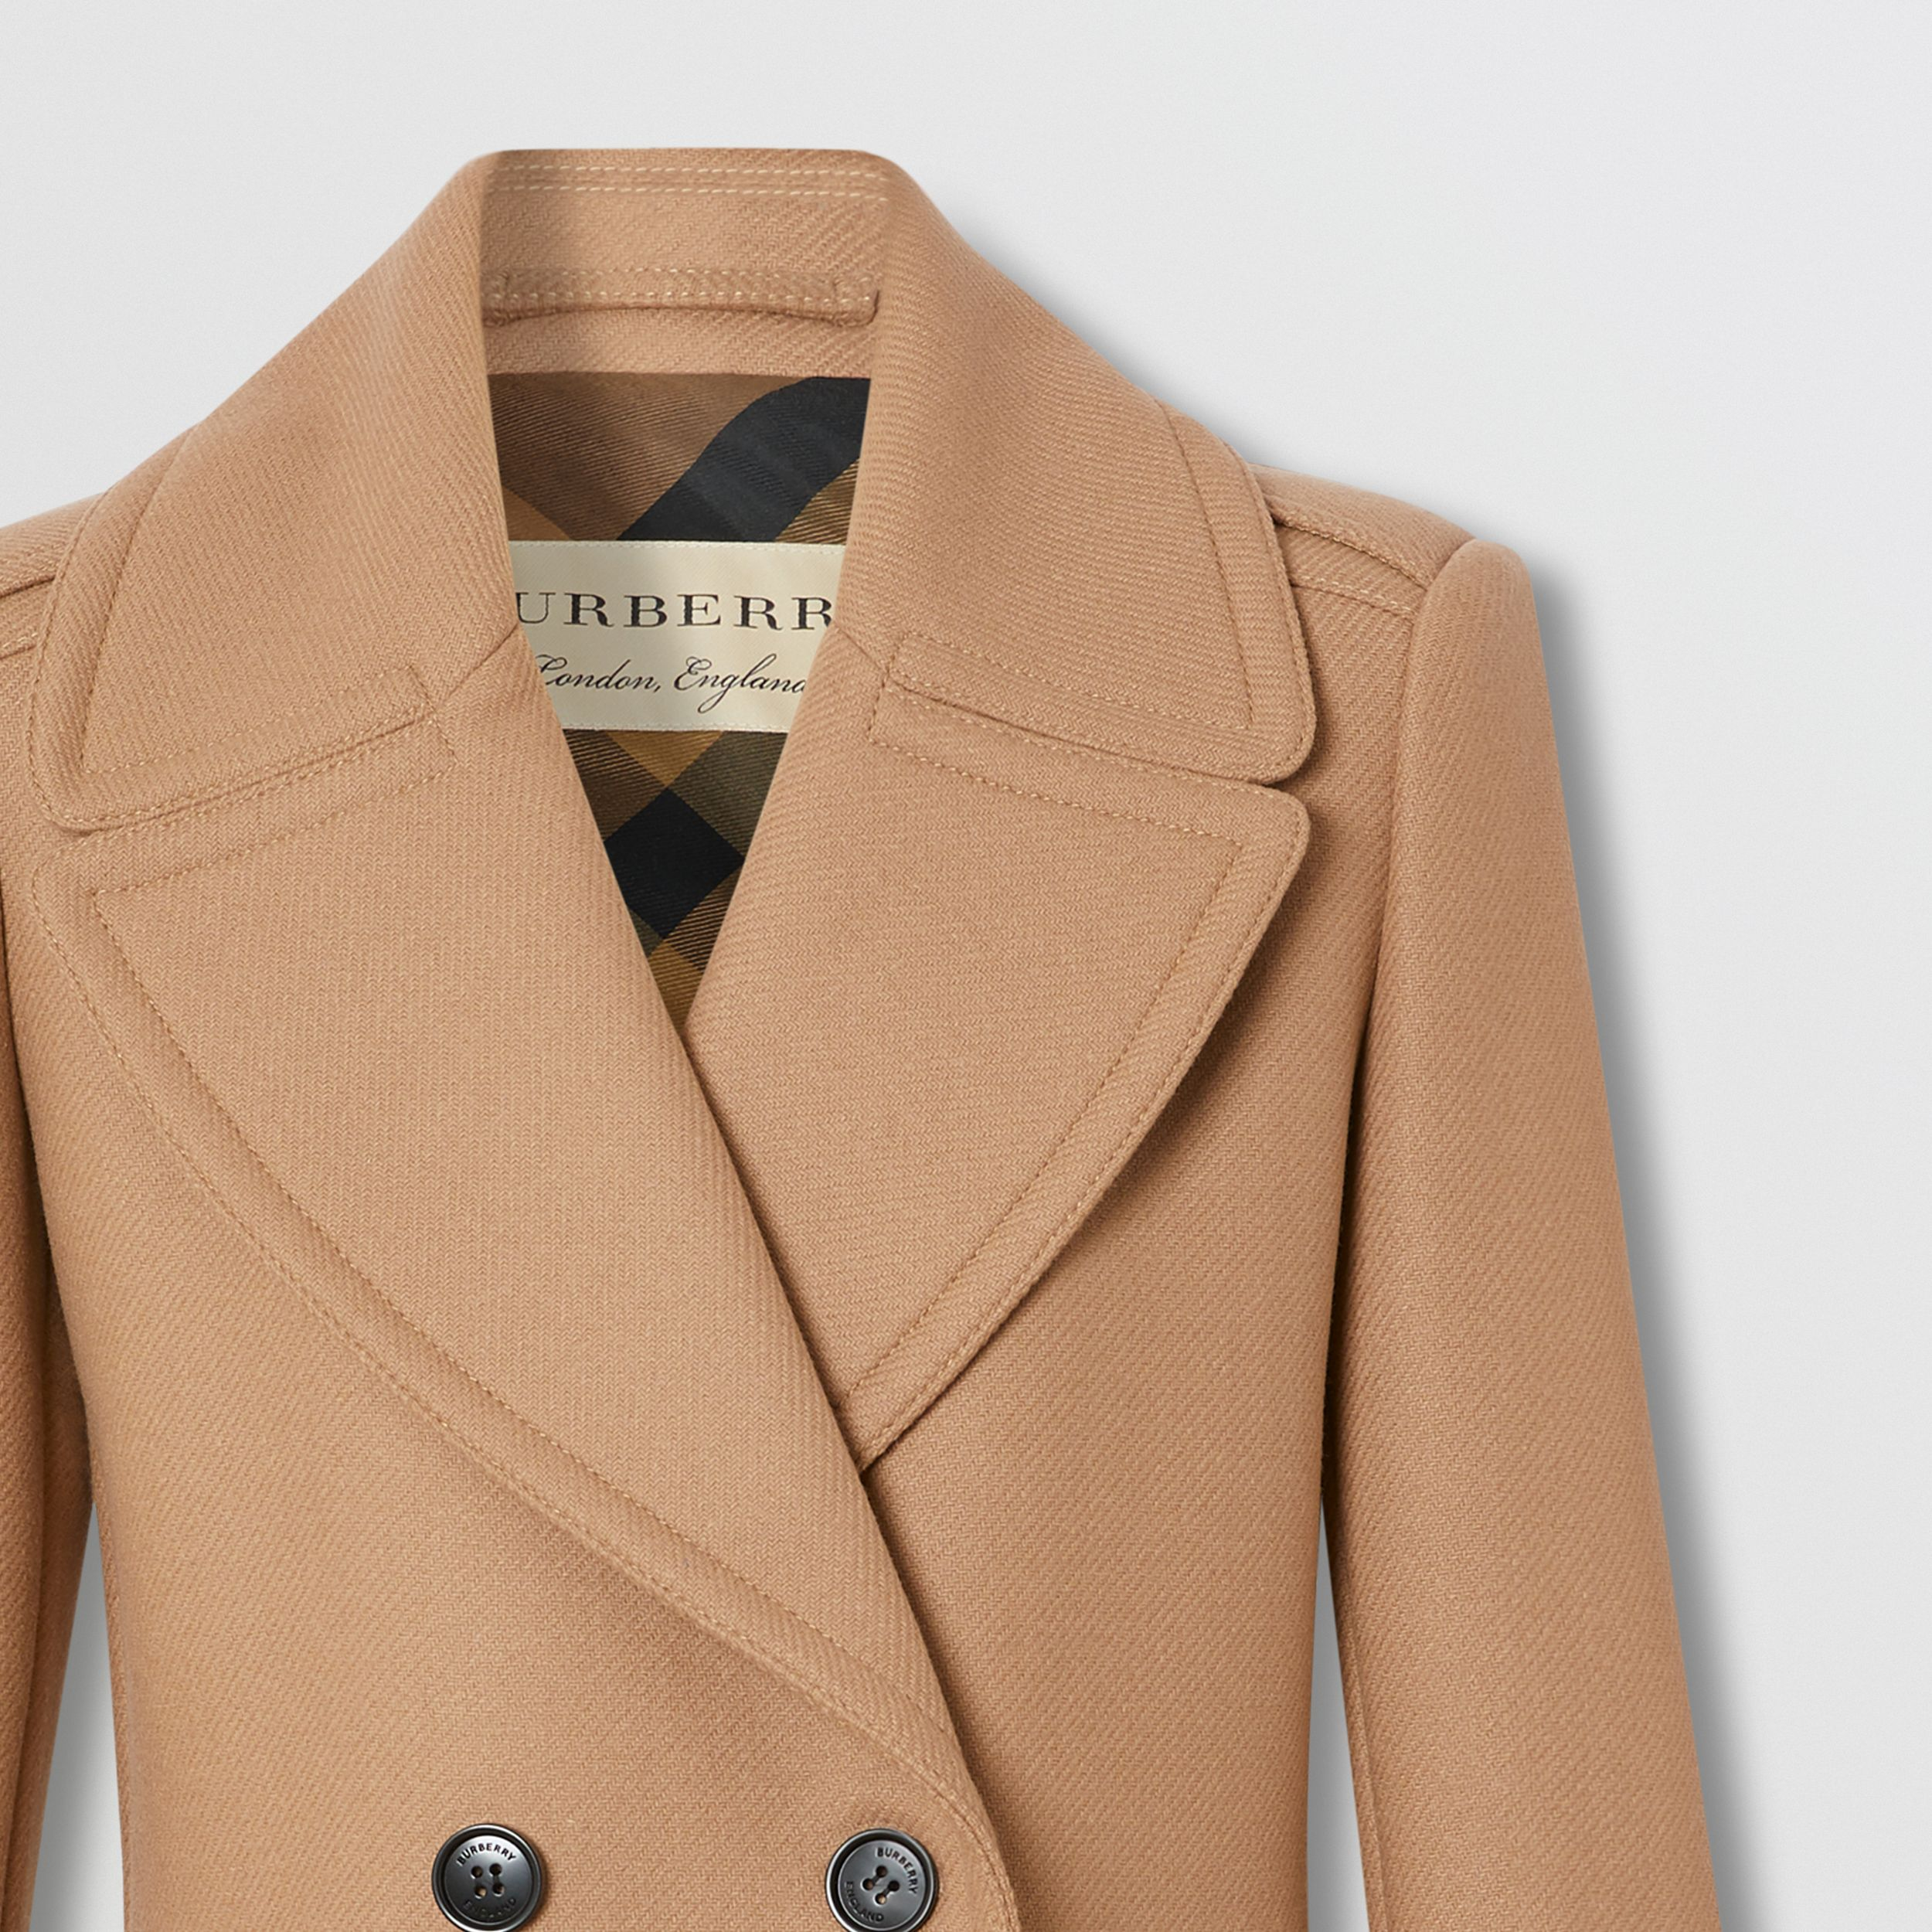 Wool Cashmere Blend Pea Coat in Camel - Women | Burberry - 2